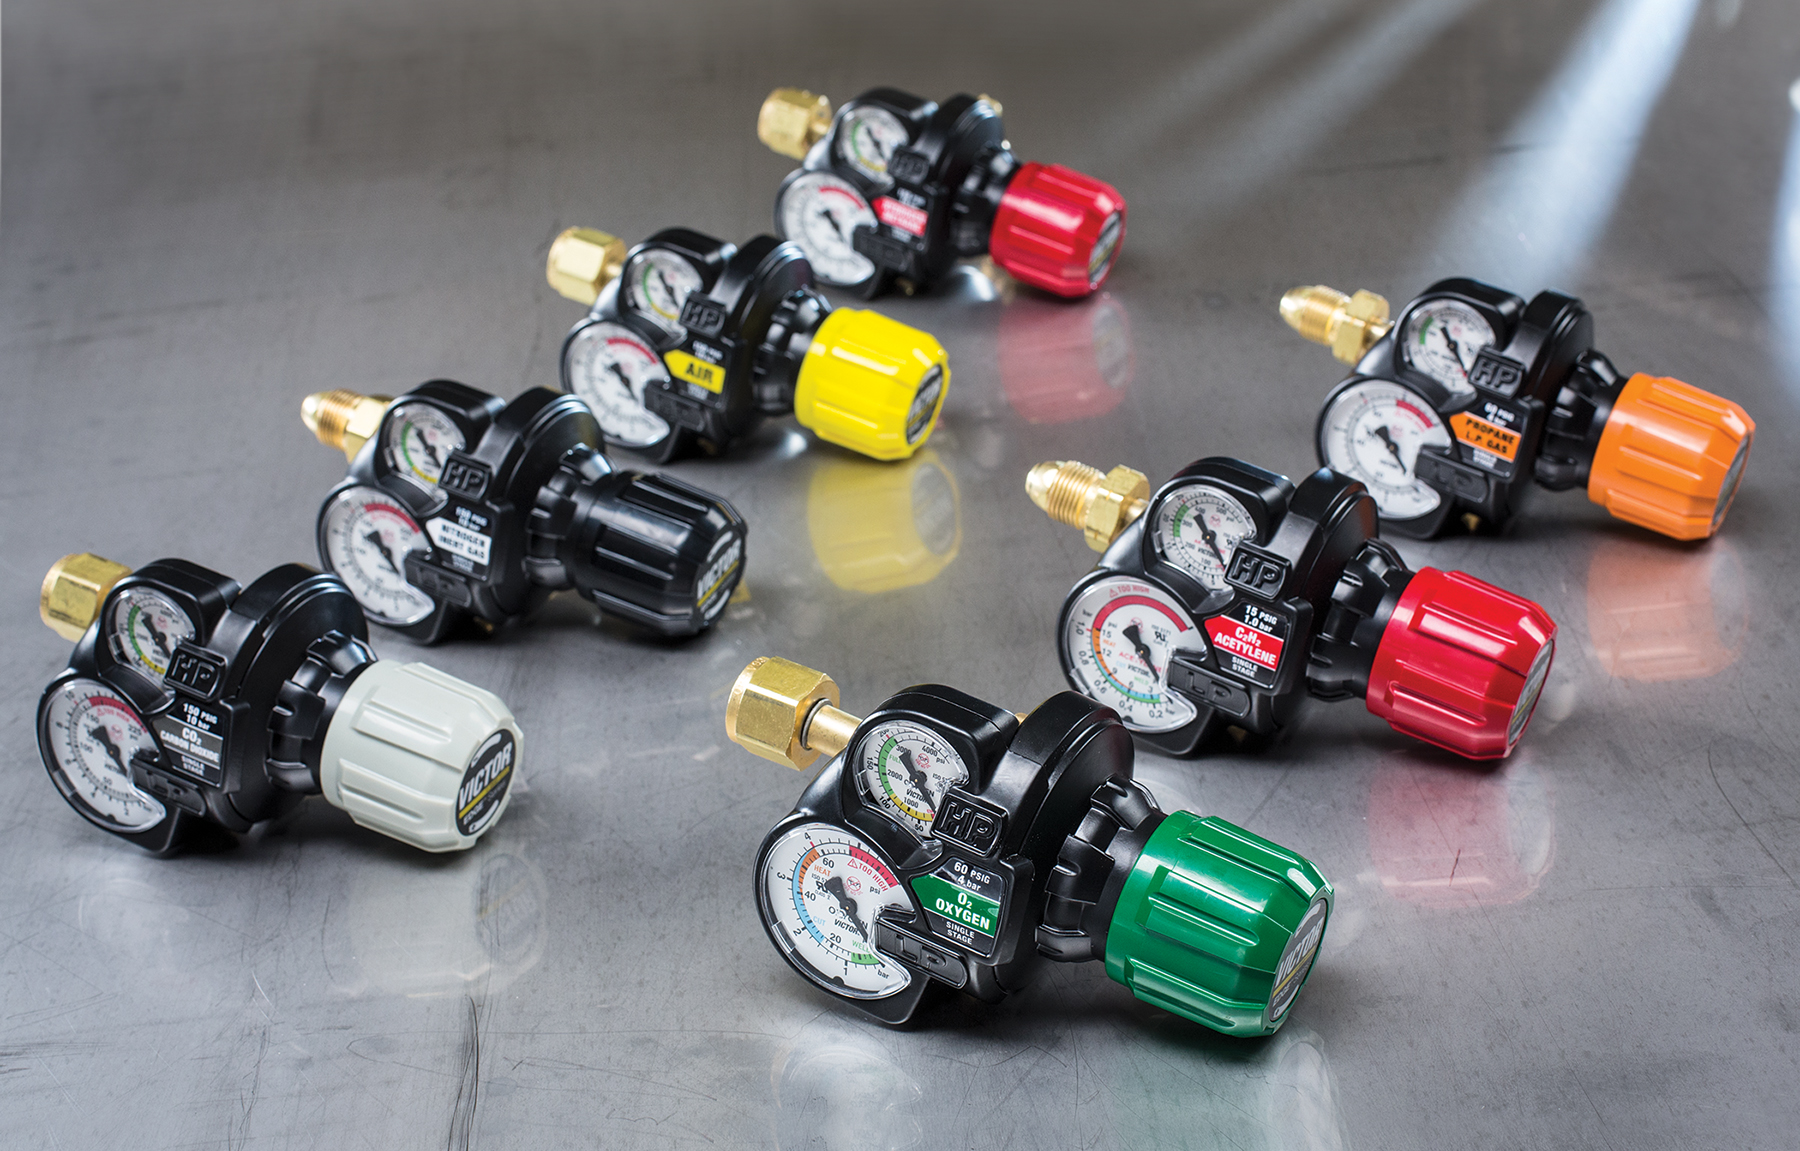 Victor® EDGE™ 2 O Gas Regulator Offers Intuitive Operation